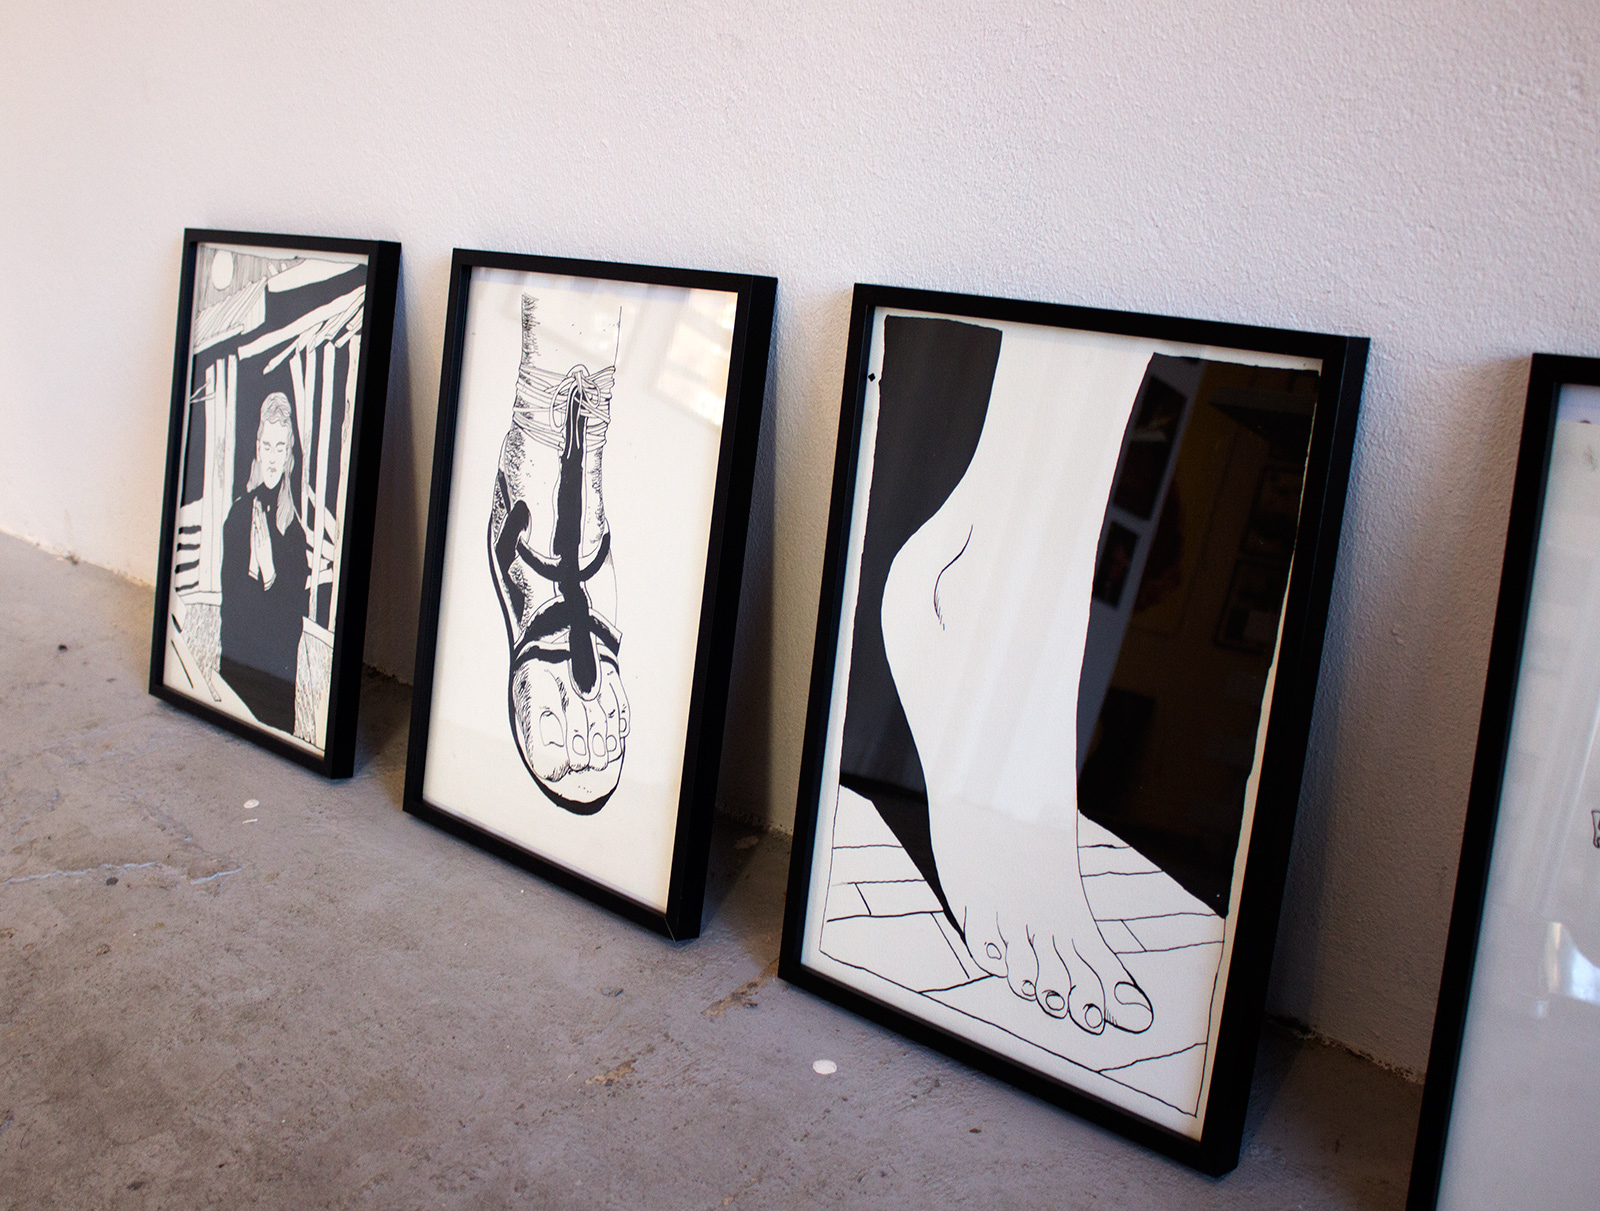 drawings, aesthetic, figurative, portraiture, bodies, sexuality, black, grey, white, artliner, ink, paper, marker, nude, Buy original high quality art. Paintings, drawings, limited edition prints & posters by talented artists.